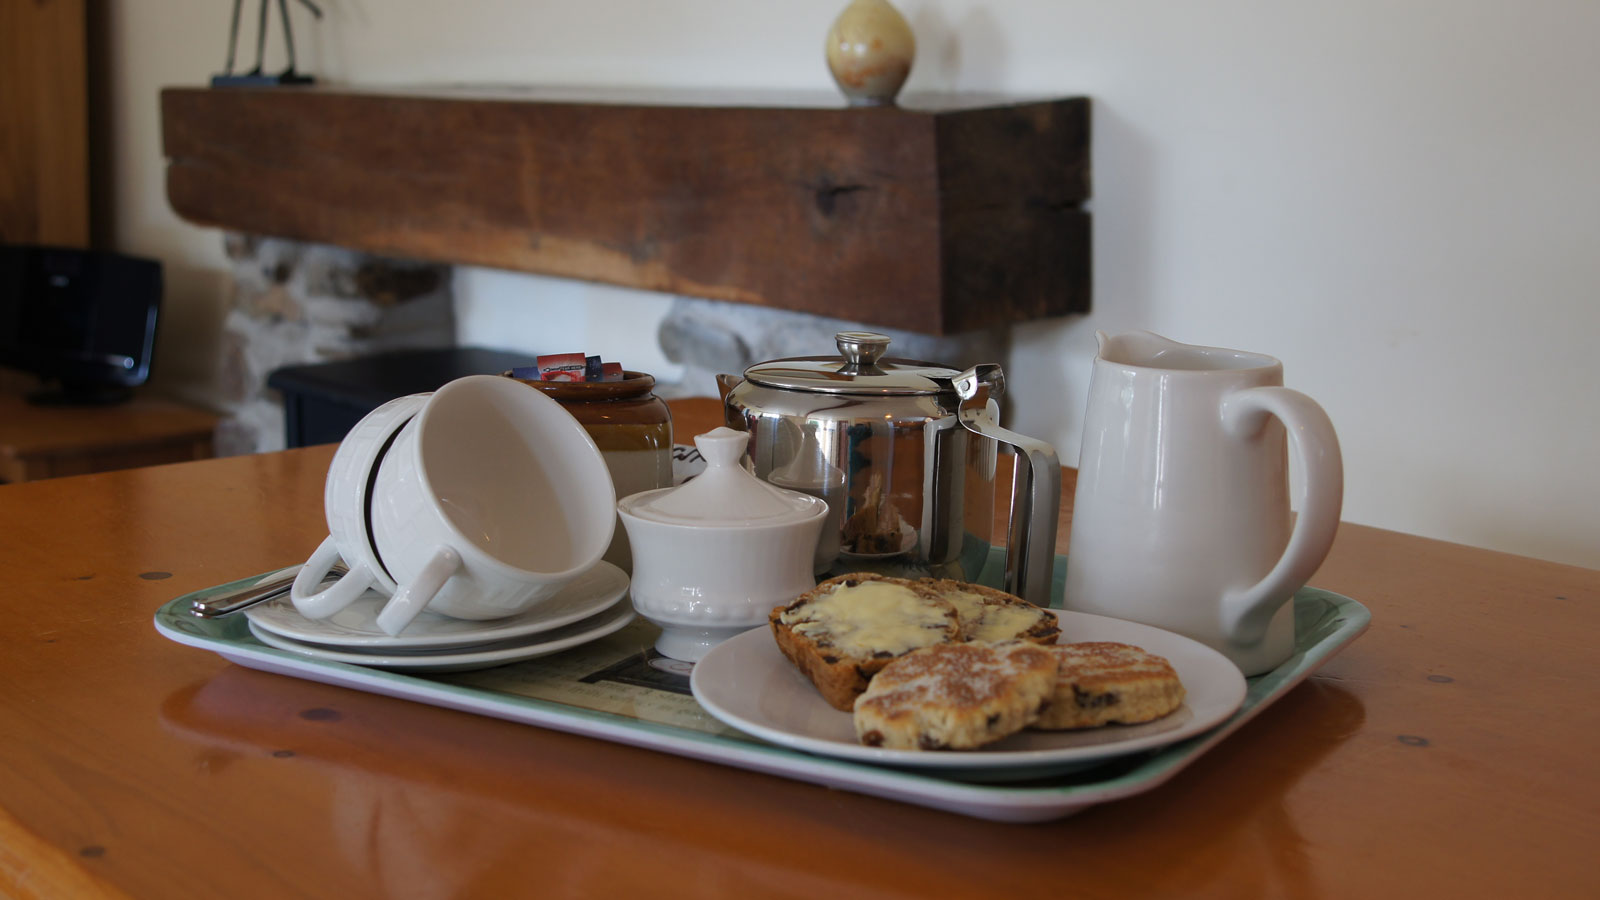 A warm welome at Mincorn Holiday Cottage - welcome plate of cakes